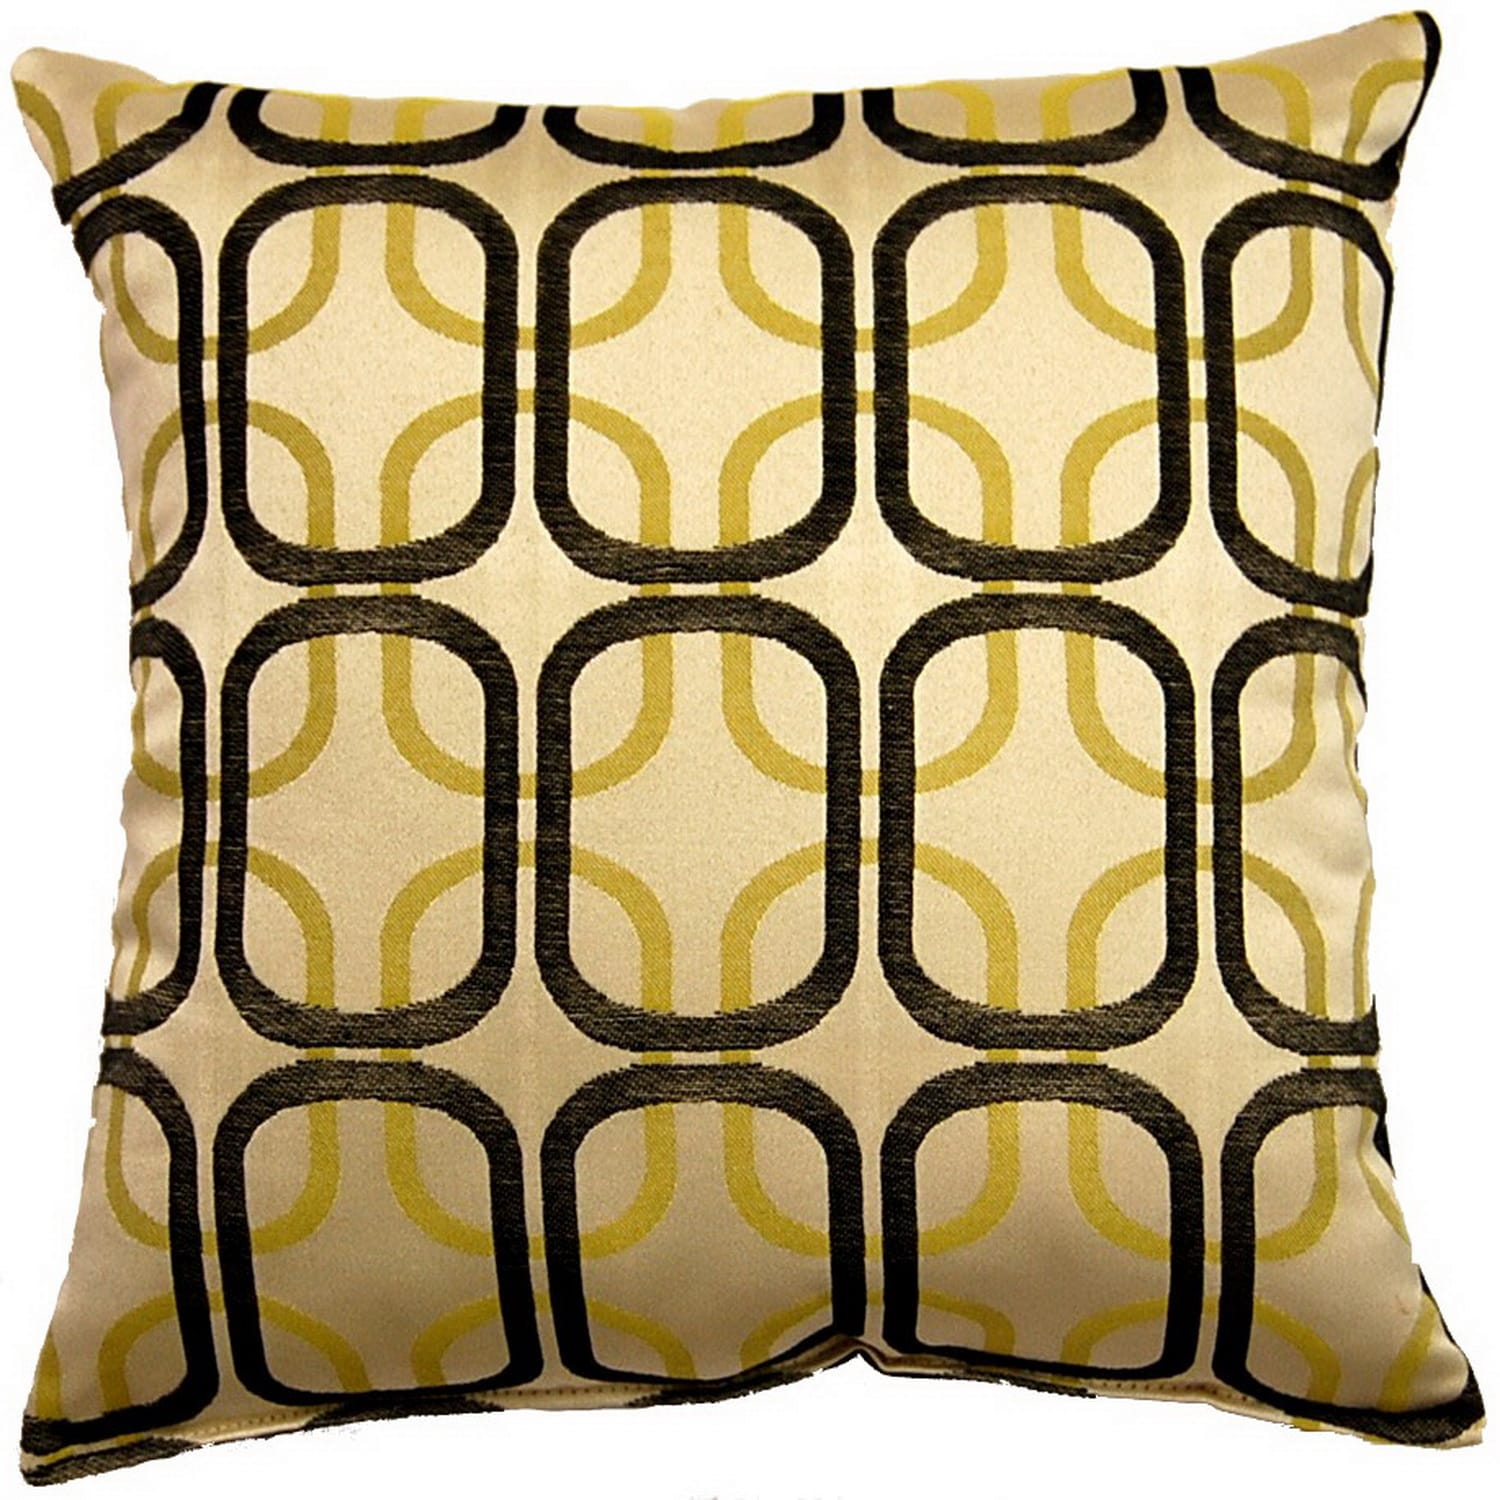 Fox Hill Trading Linked Black 17-inch Throw Pillows (Set of 2)